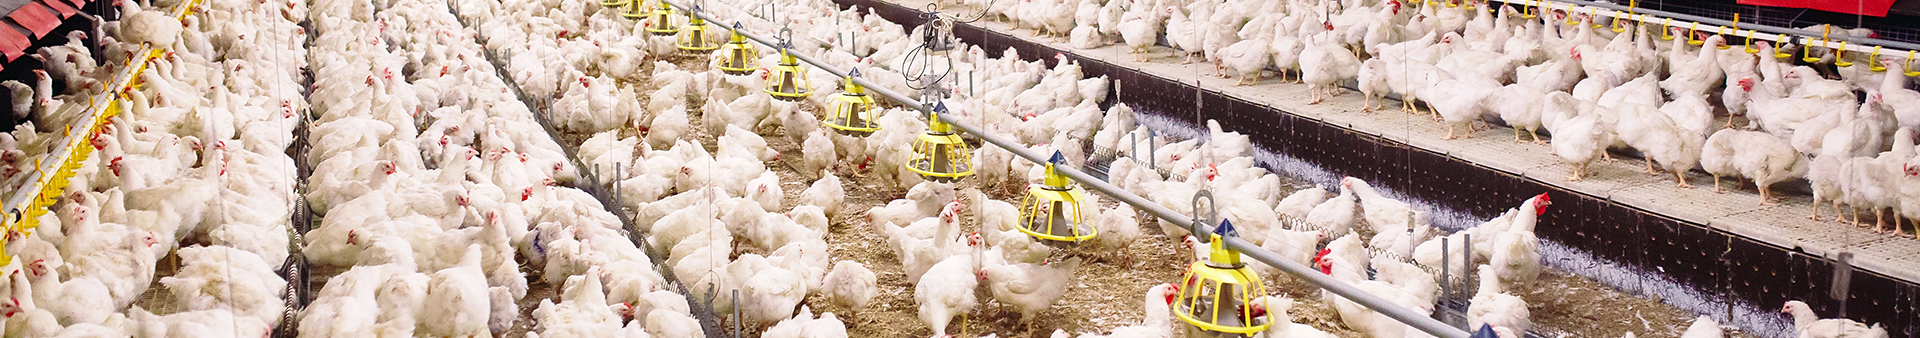 pressure transducers for poultry farms